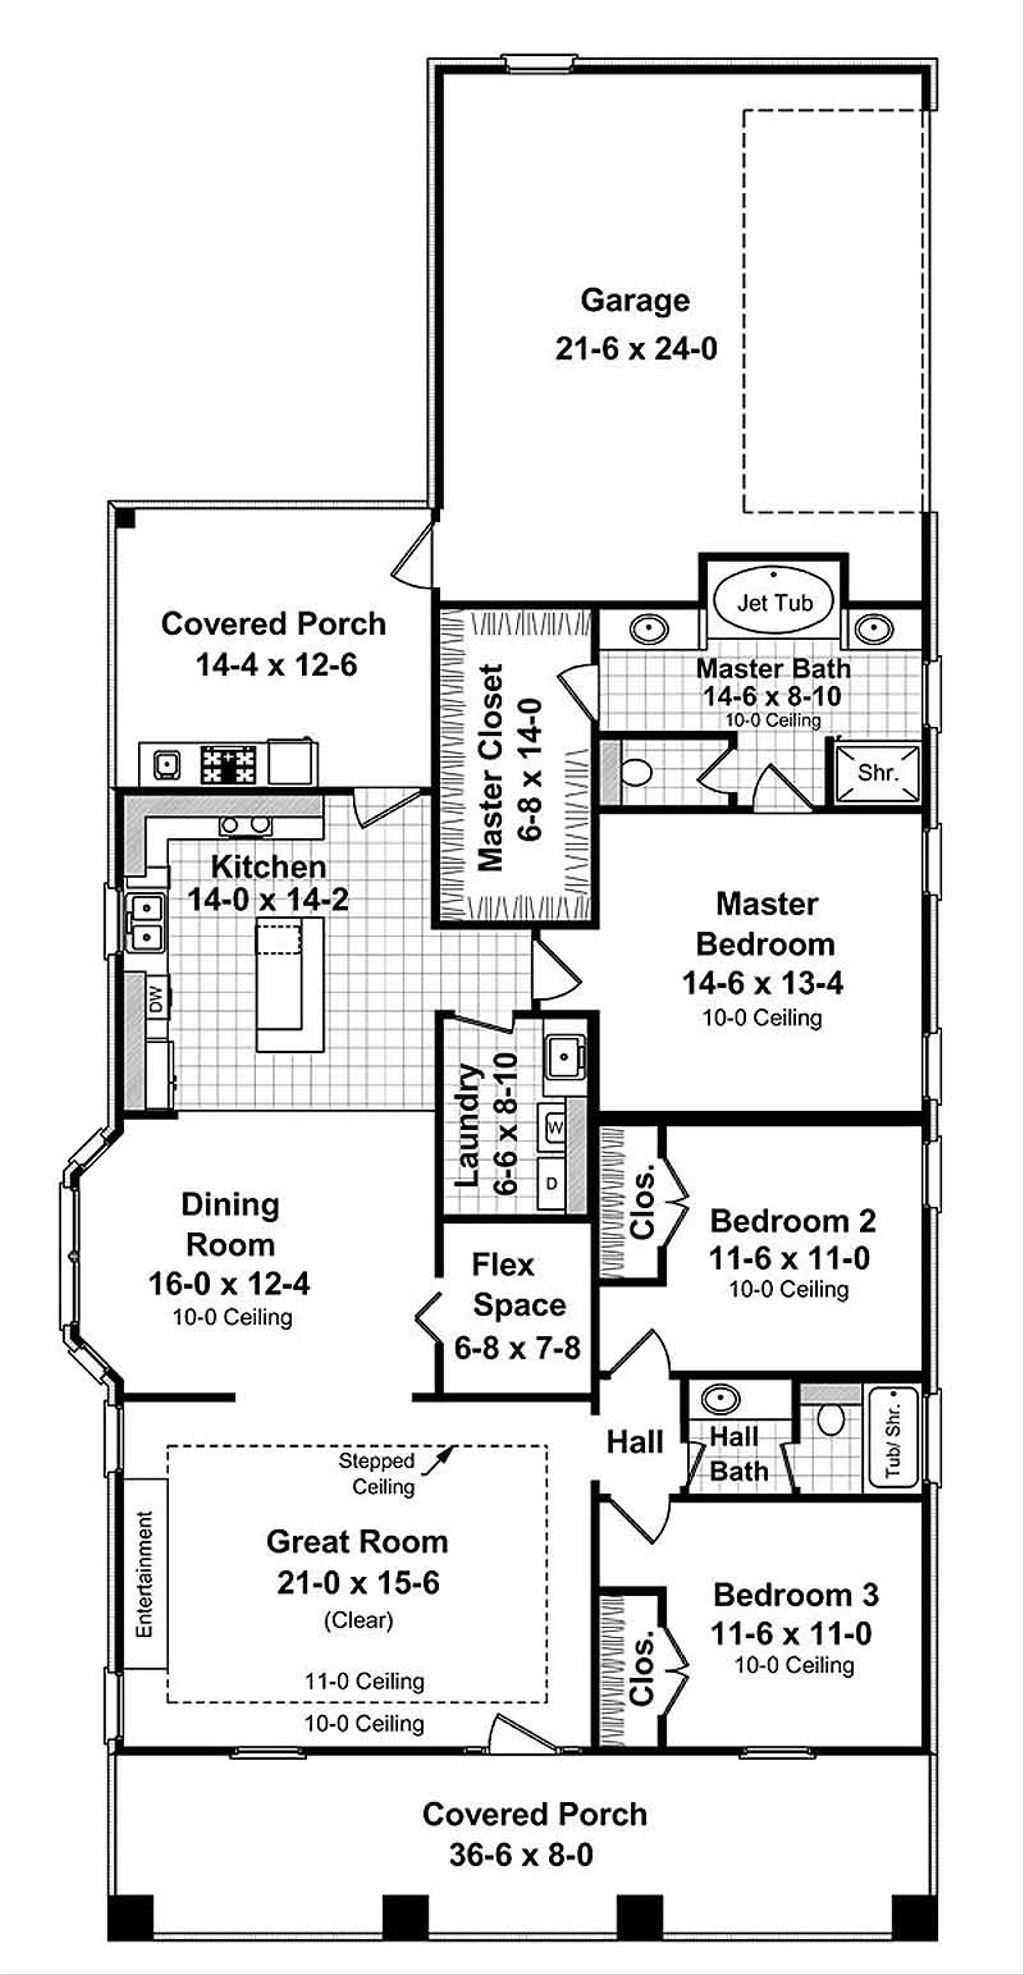 Craftsman Style House Plan - 3 Beds 2 Baths 1800 Sq/Ft Plan ... on 1800 house architecture, 1800 house blueprints, 1800 house interiors,